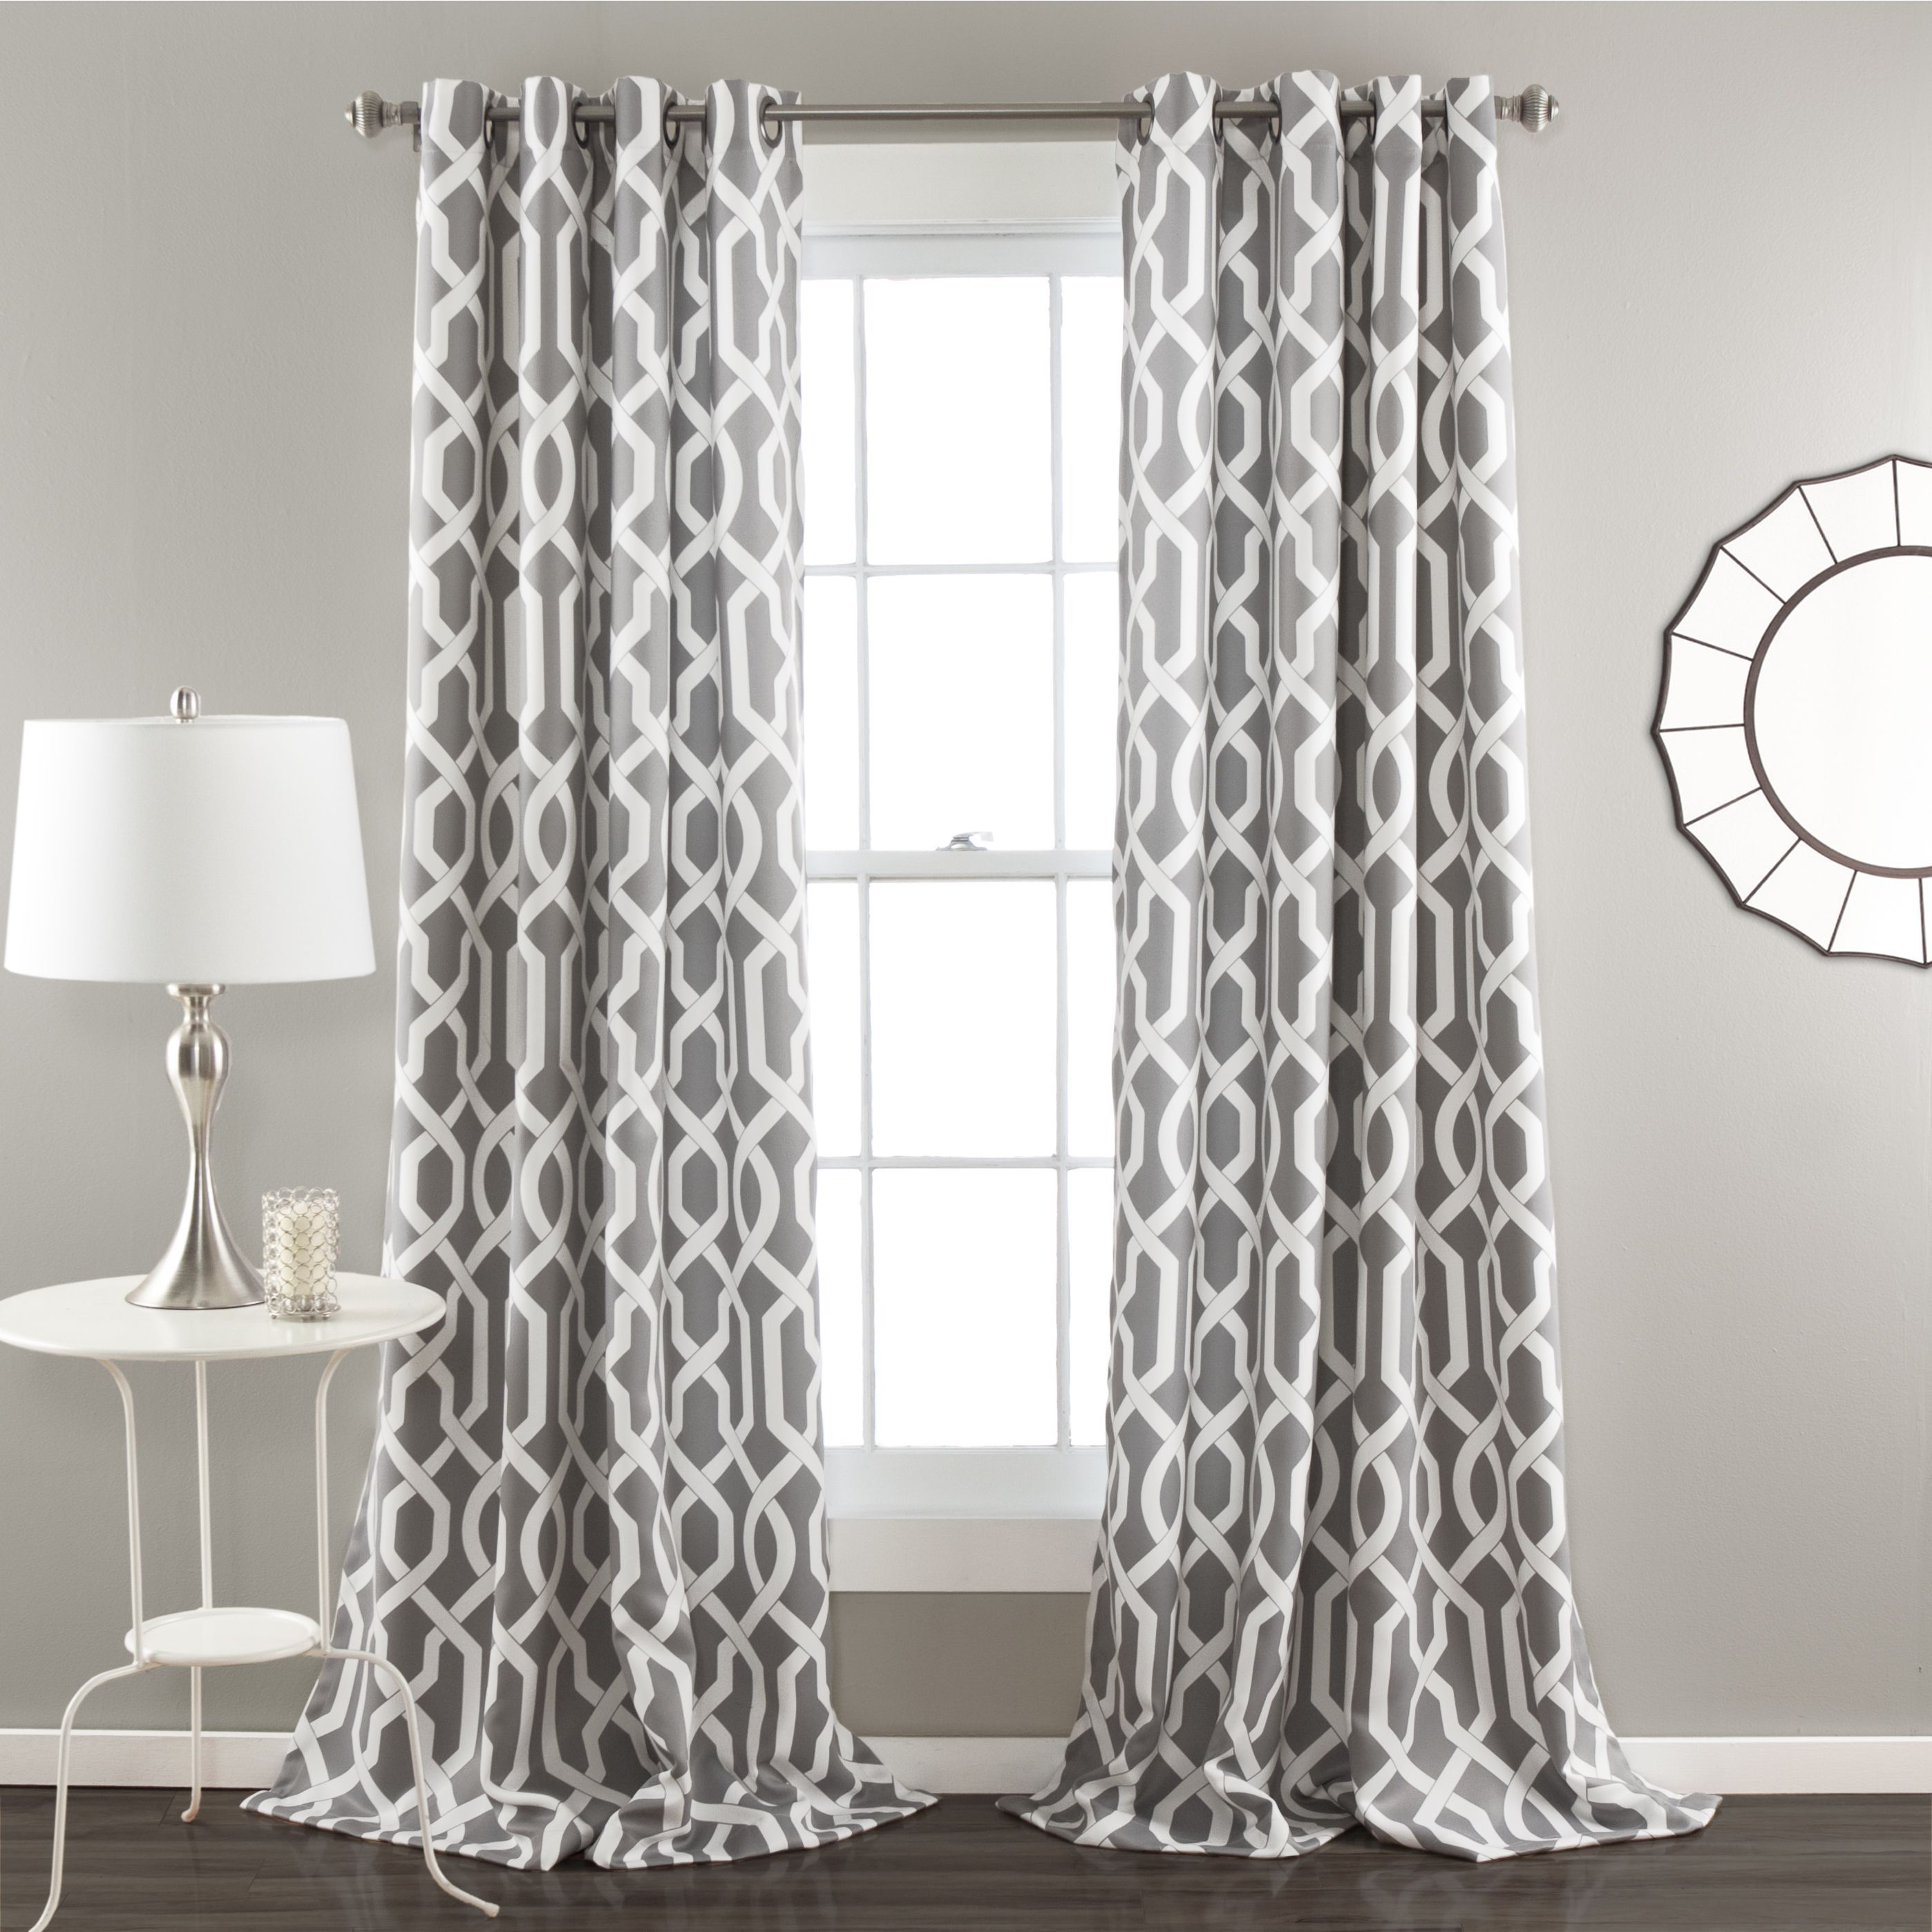 shower white curtain curtains beige drapery walmart ikea window black org b recyclenebraska and draperies valances dries blackout marjun target drapes grey panels dillards